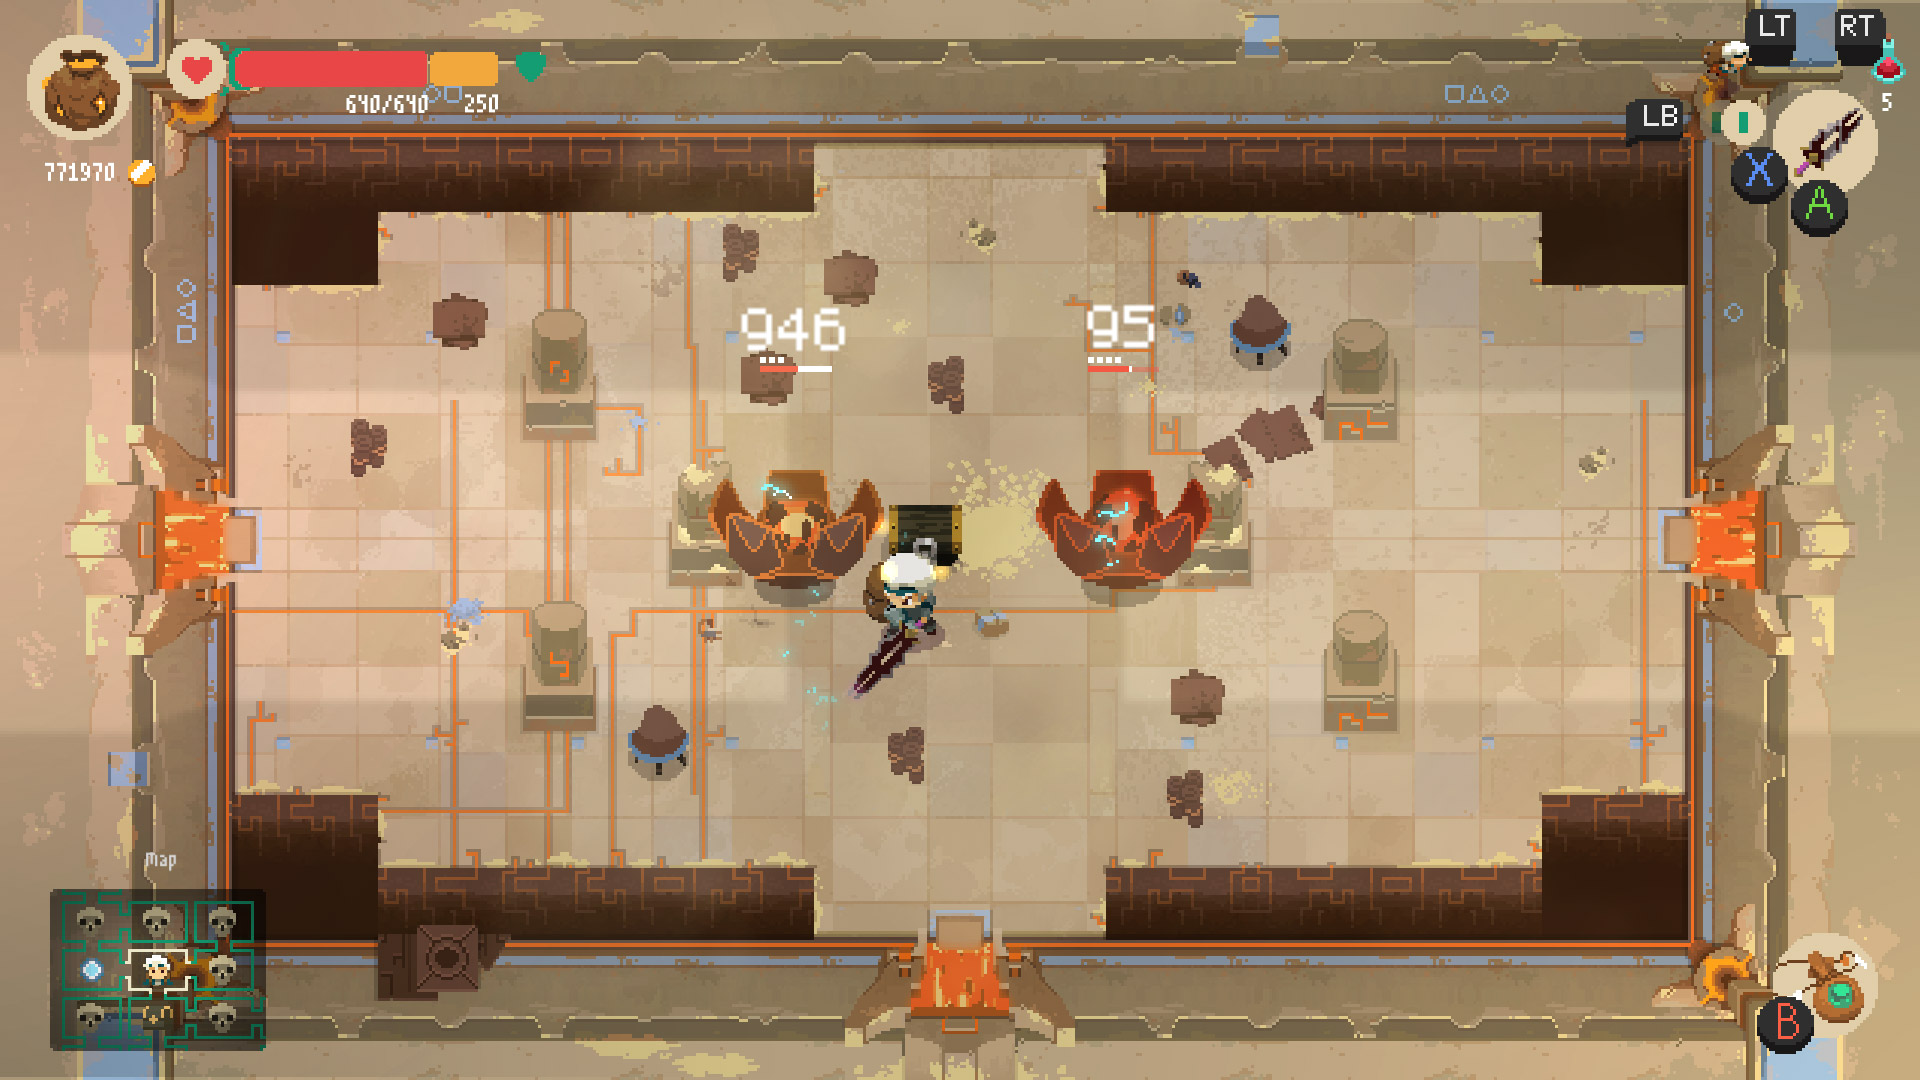 Moonlighter review image 4